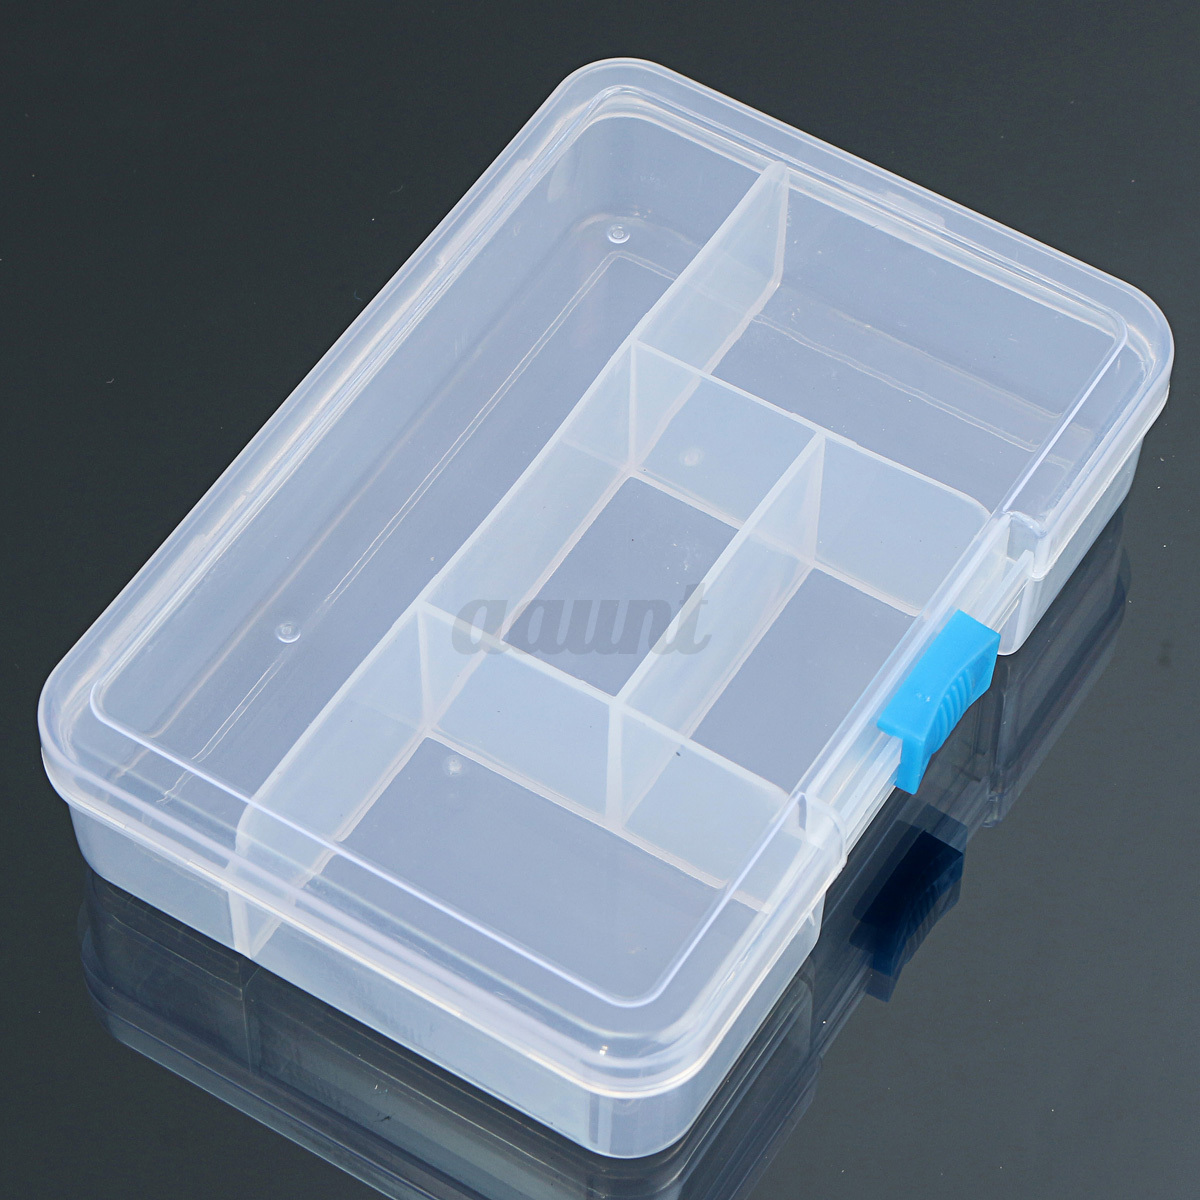 Jewellery Packaging And Bead Storage With: Plastic Craft Beads Jewellery Storage Organiser